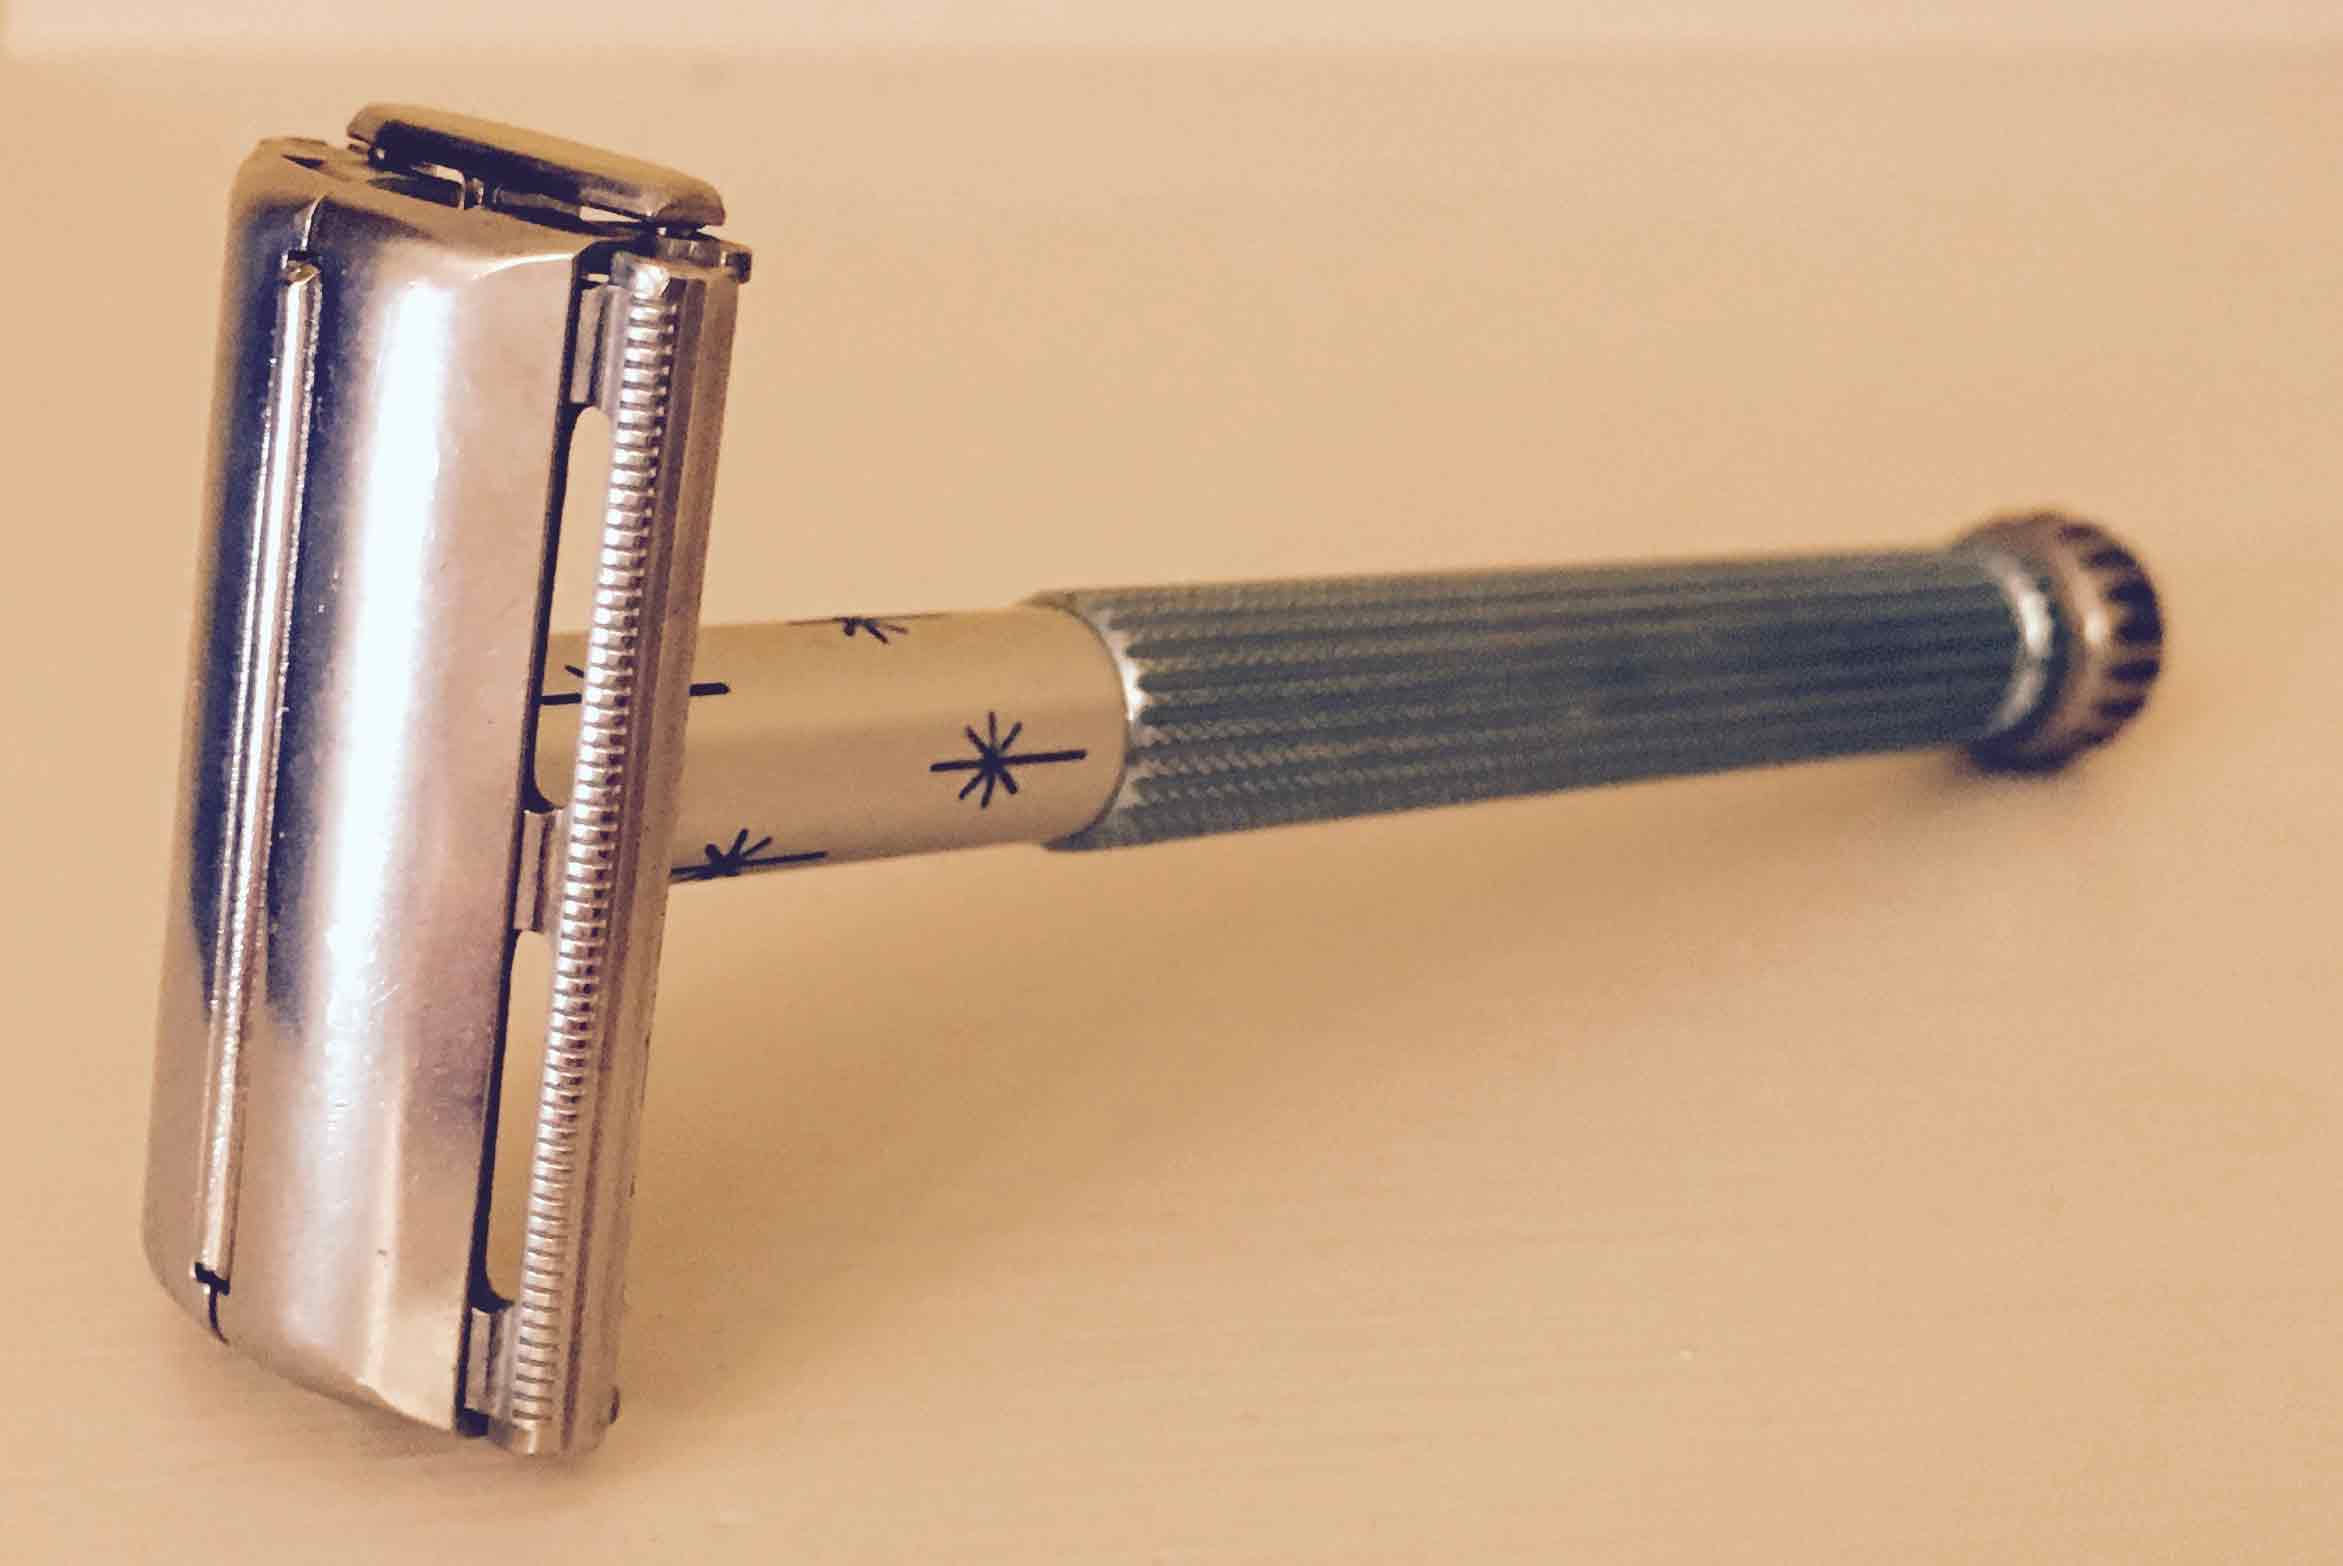 Lady-Gillette-1963-side.jpg